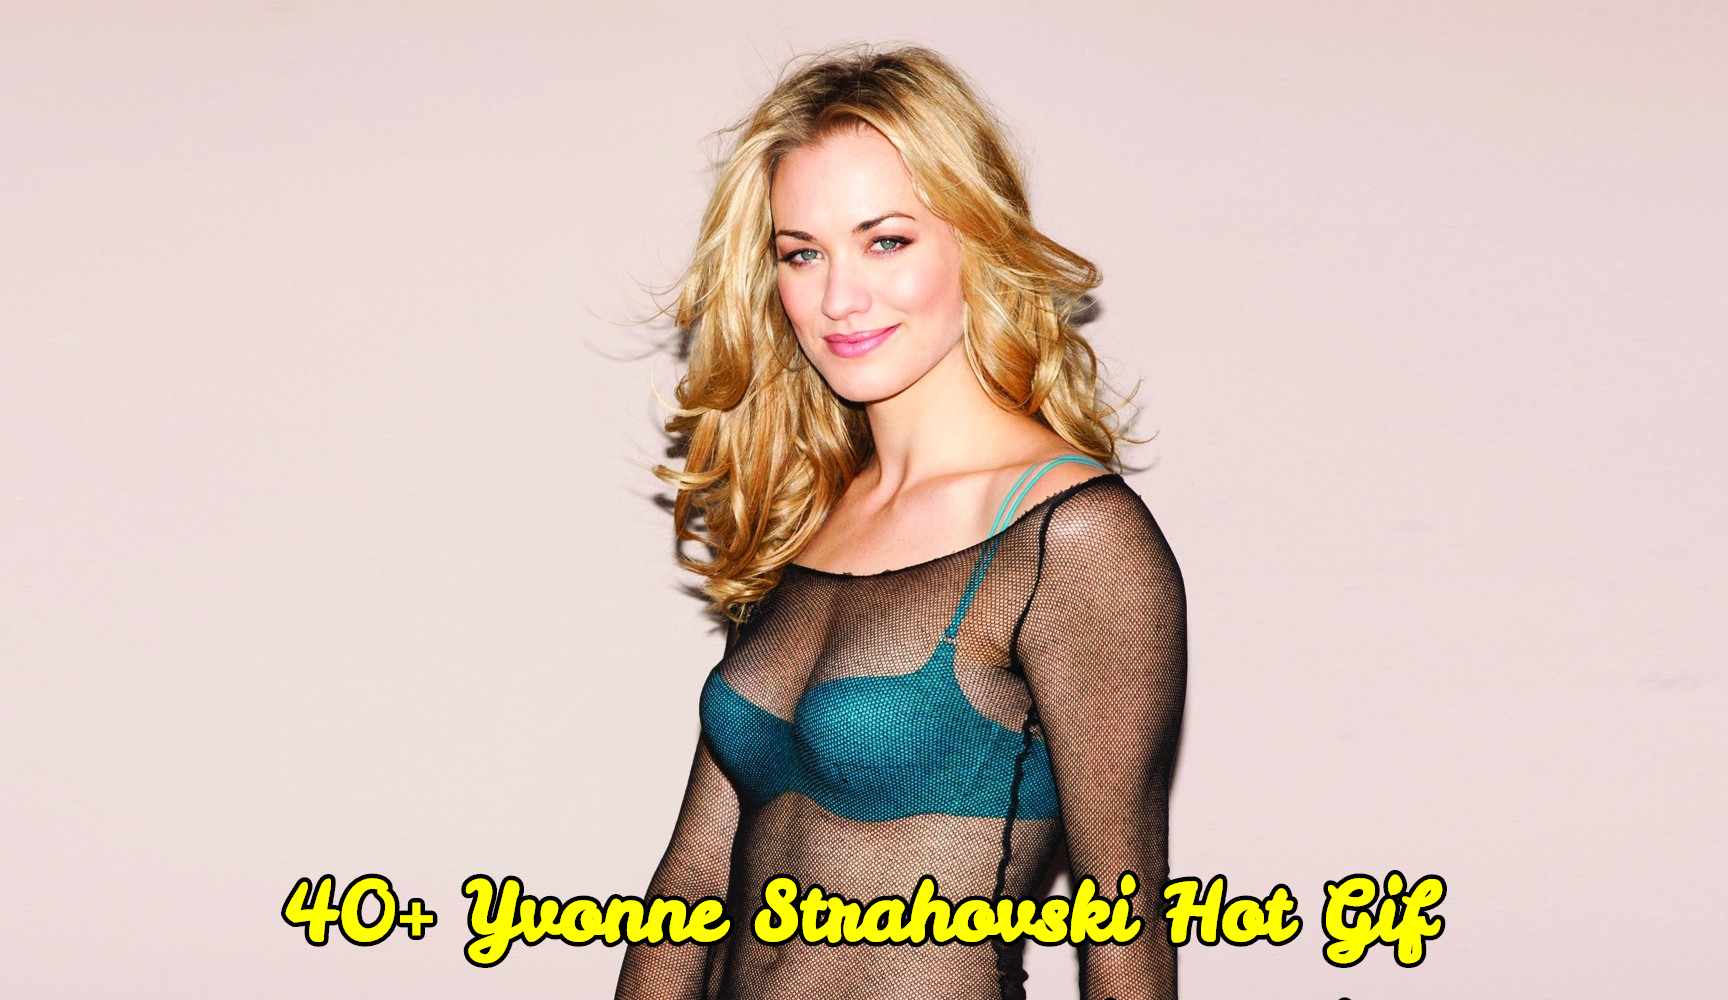 46 Hot Gif Of Yvonne Strahovski Which Will Cause You To Turn Out To Be Captivated With Her Alluring Body Geeks On Coffee